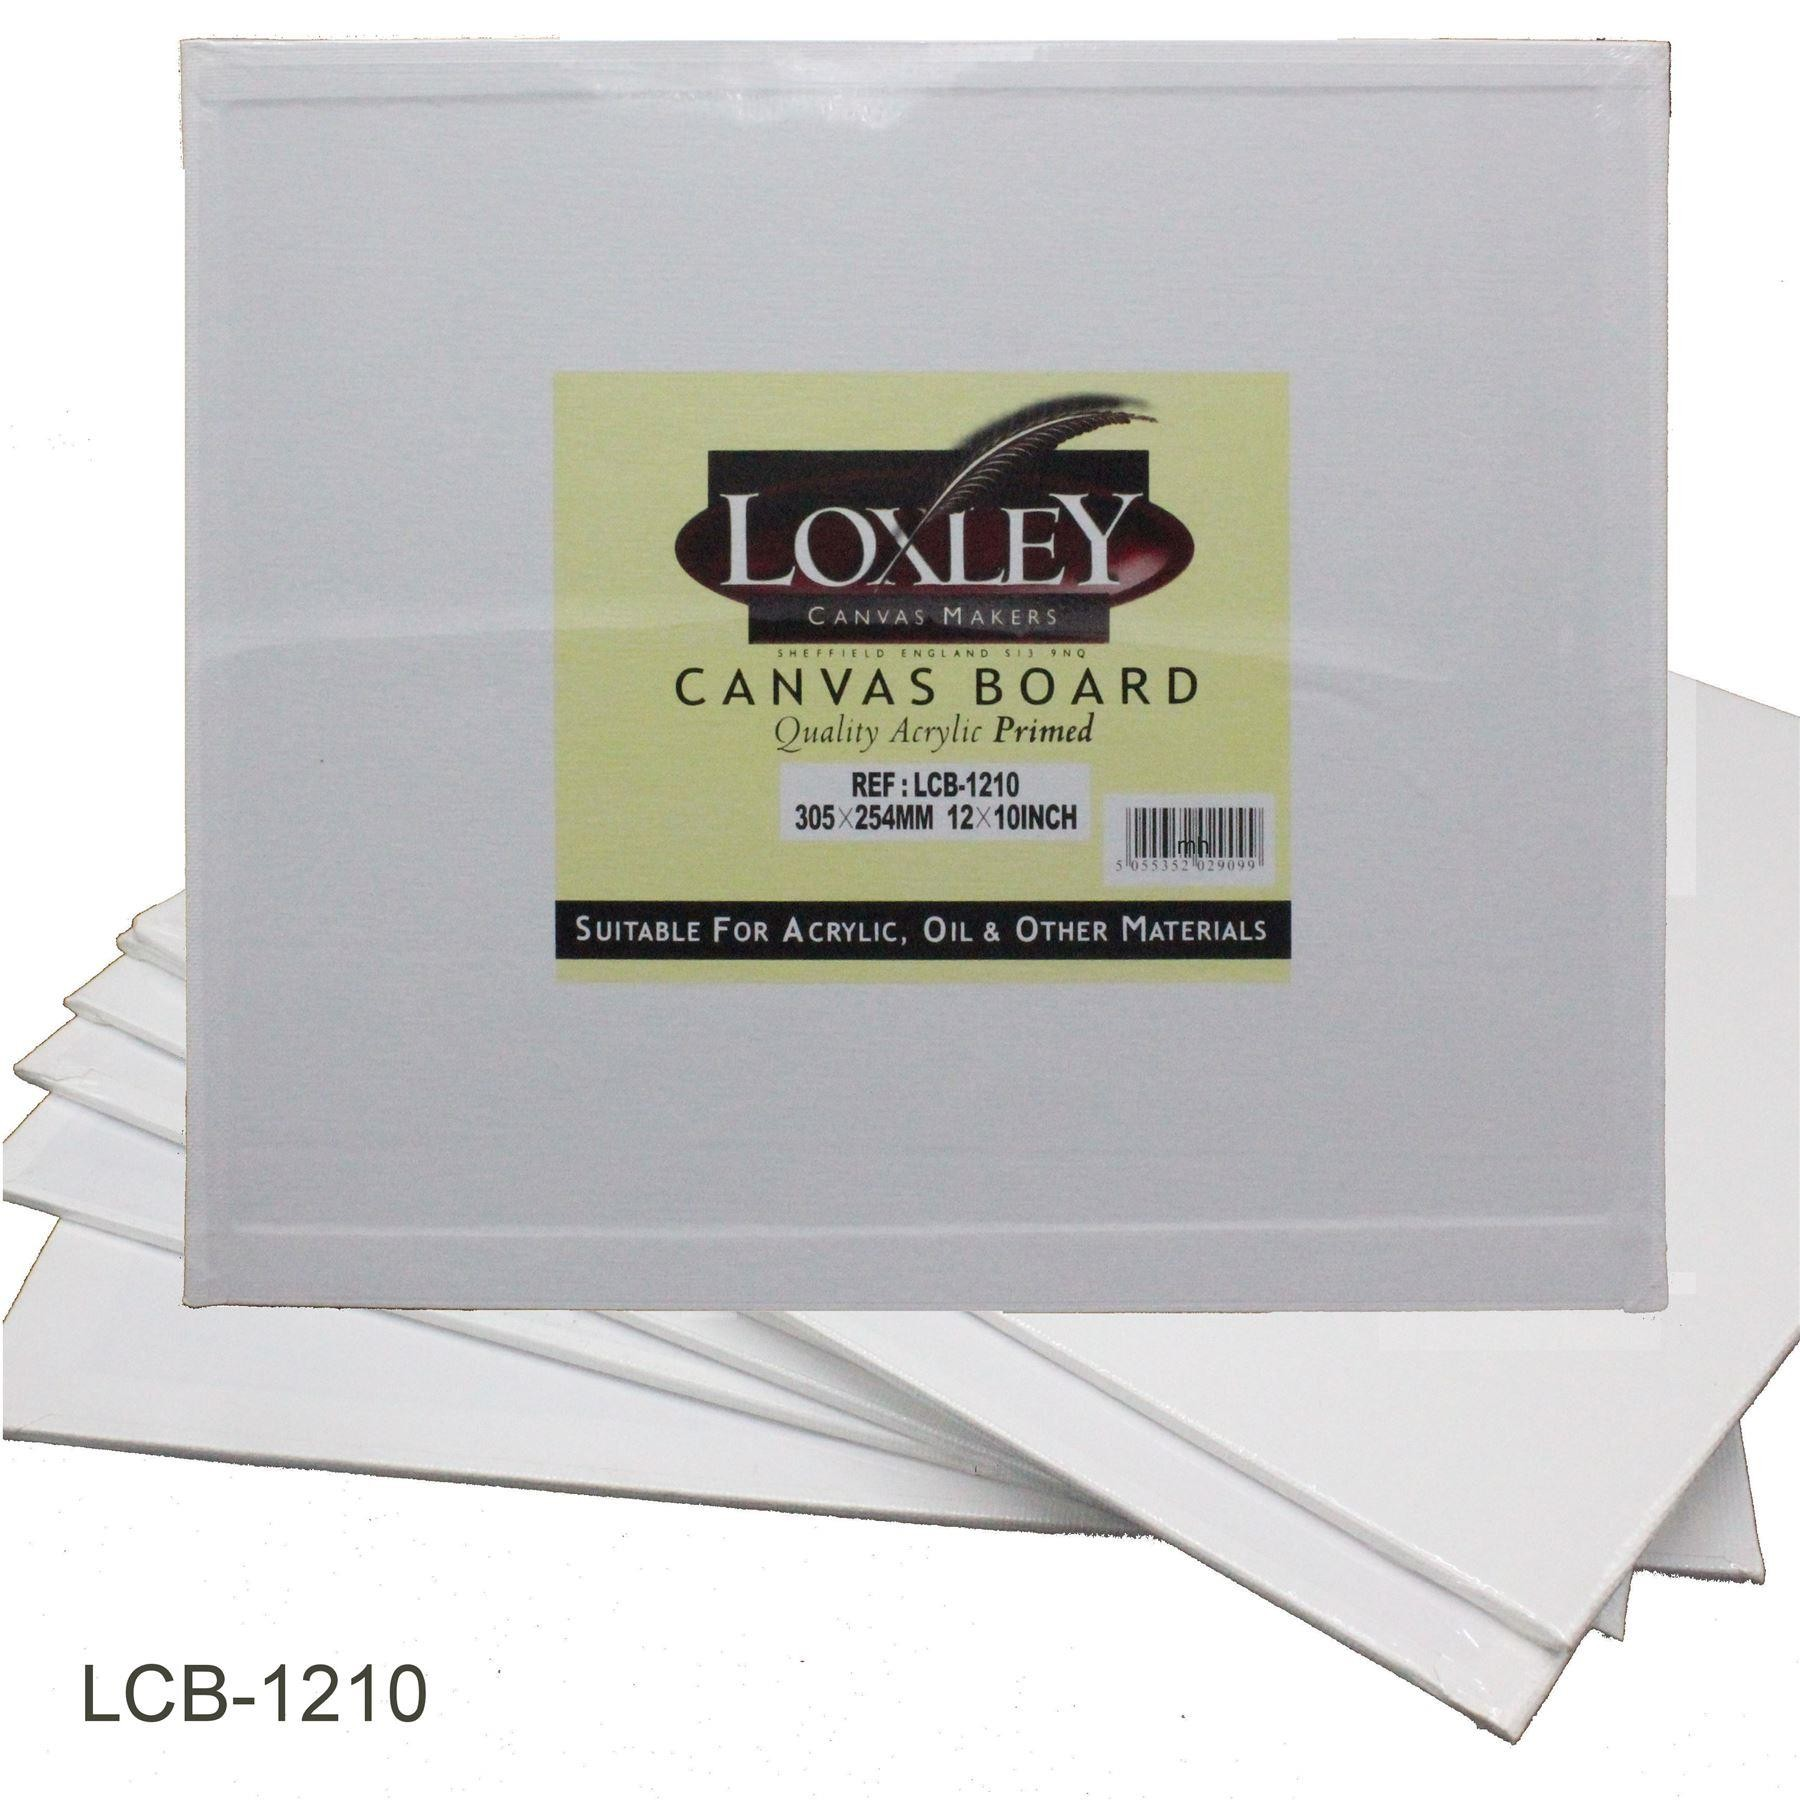 Double Primed Acrylic Canvas Board from Loxley - 12 x 10""